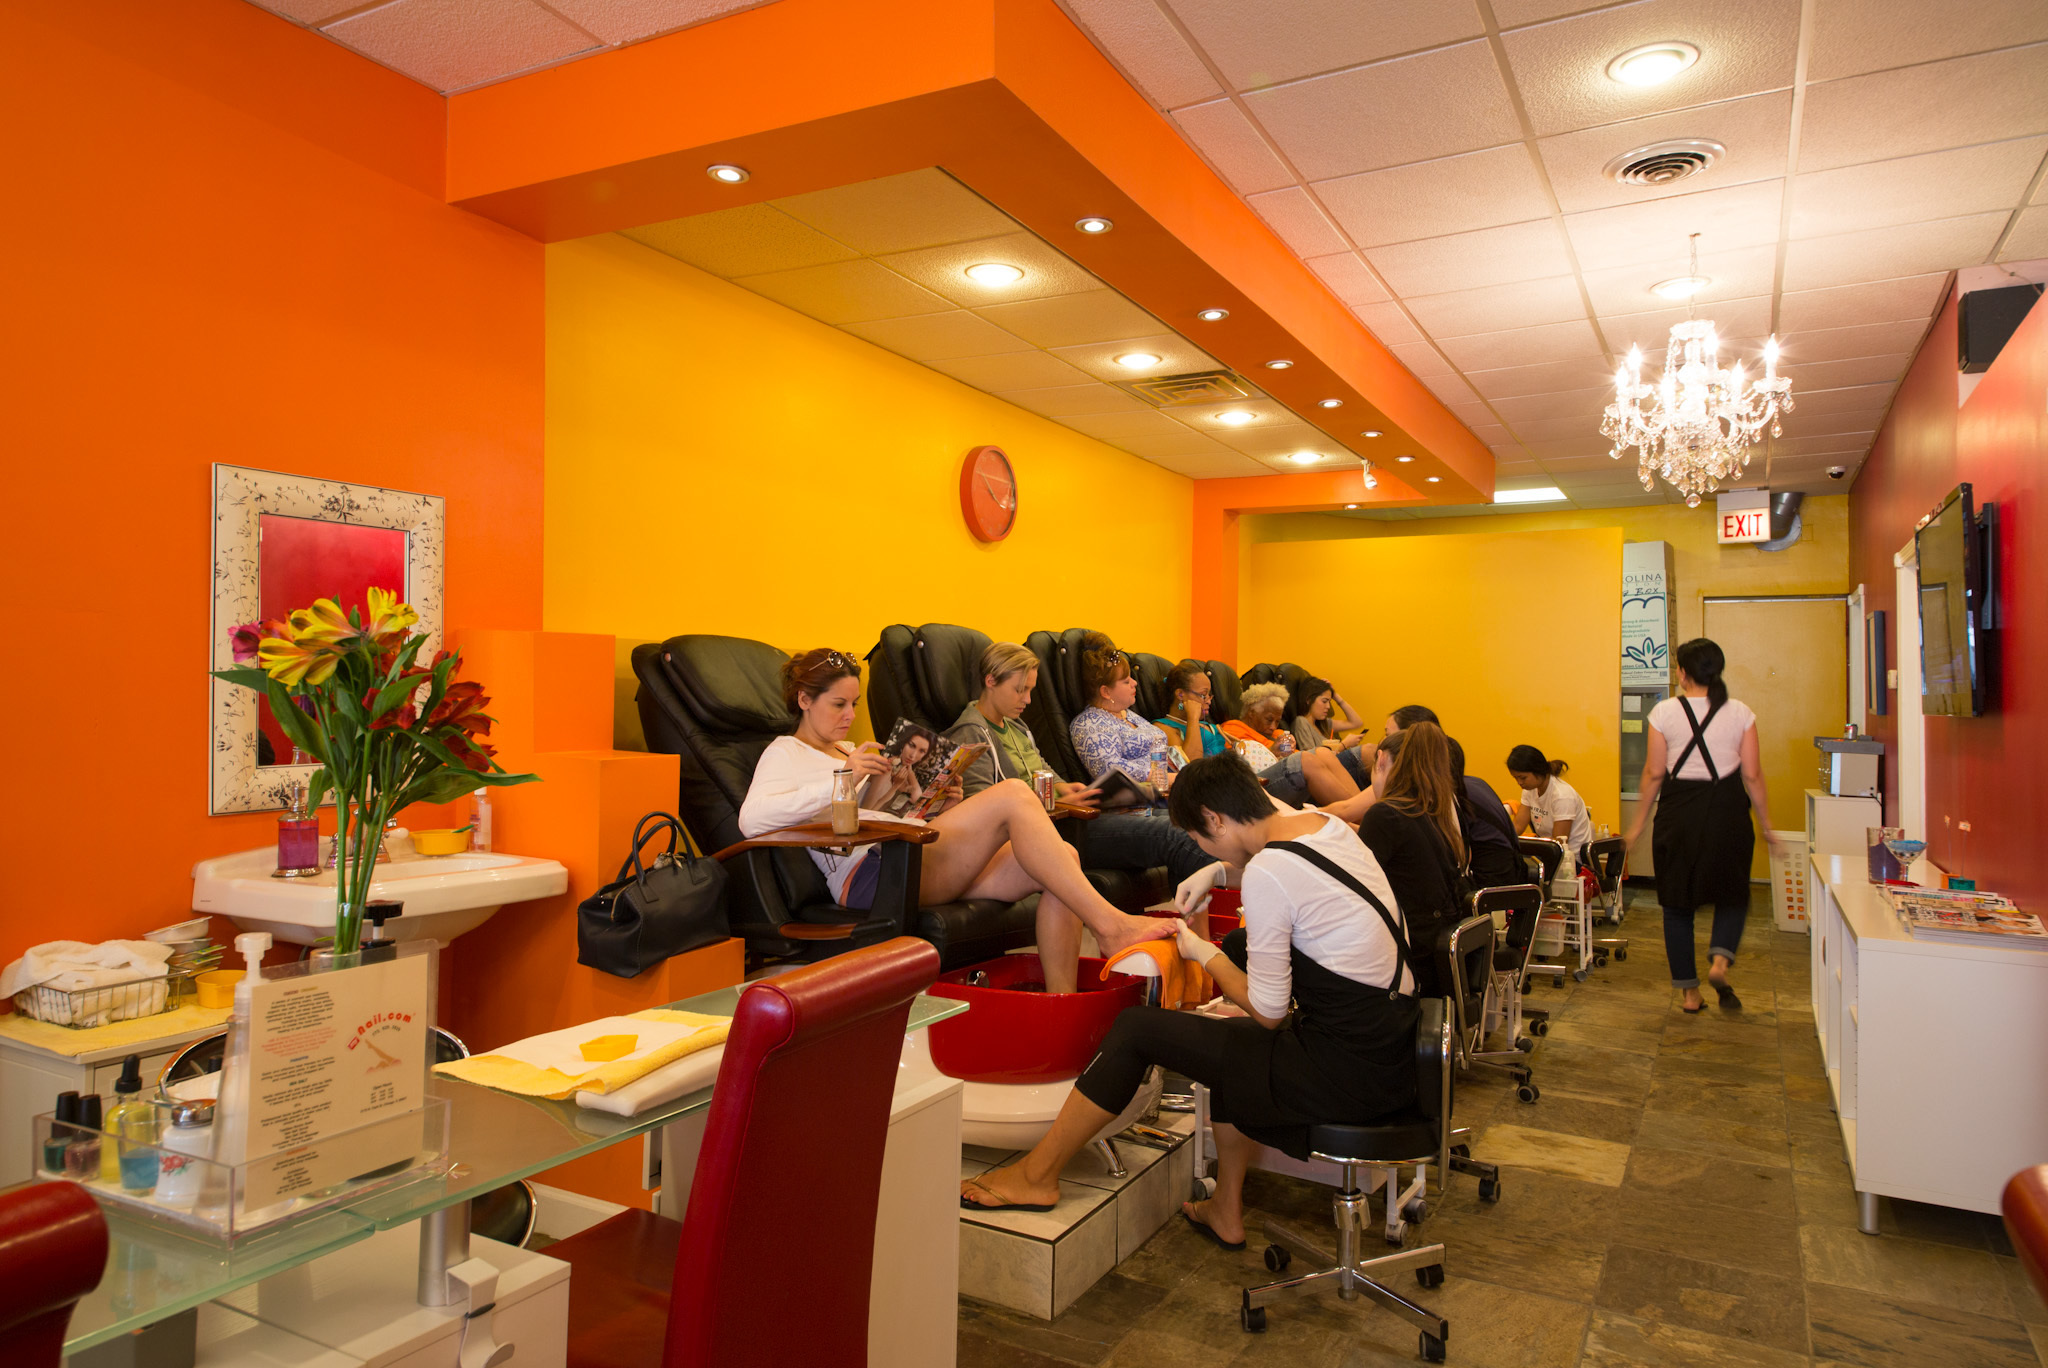 Nail salons in chicago for manicures pedicures and nail art for 24 nail salon nyc